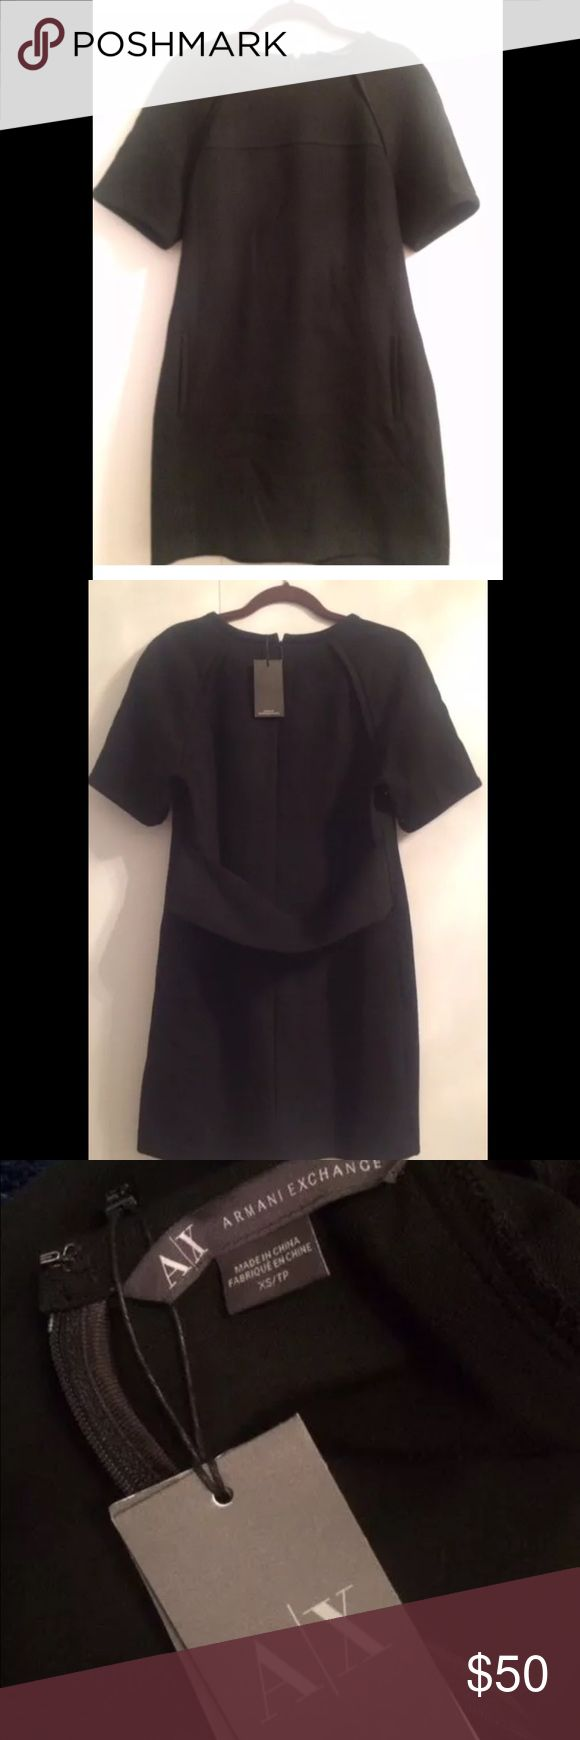 A/X Armani Exchange Short Sleeve Sheath Dress NWT A/X Armani Exchange short Sleeve Sheath Dress Black Size XS  Zip back closure with hook and eye Perfect fabric for all year round Great with boots and heels Can be dressed up or down easily! Retails for $170 Brand new with tags A/X Armani Exchange Dresses Mini